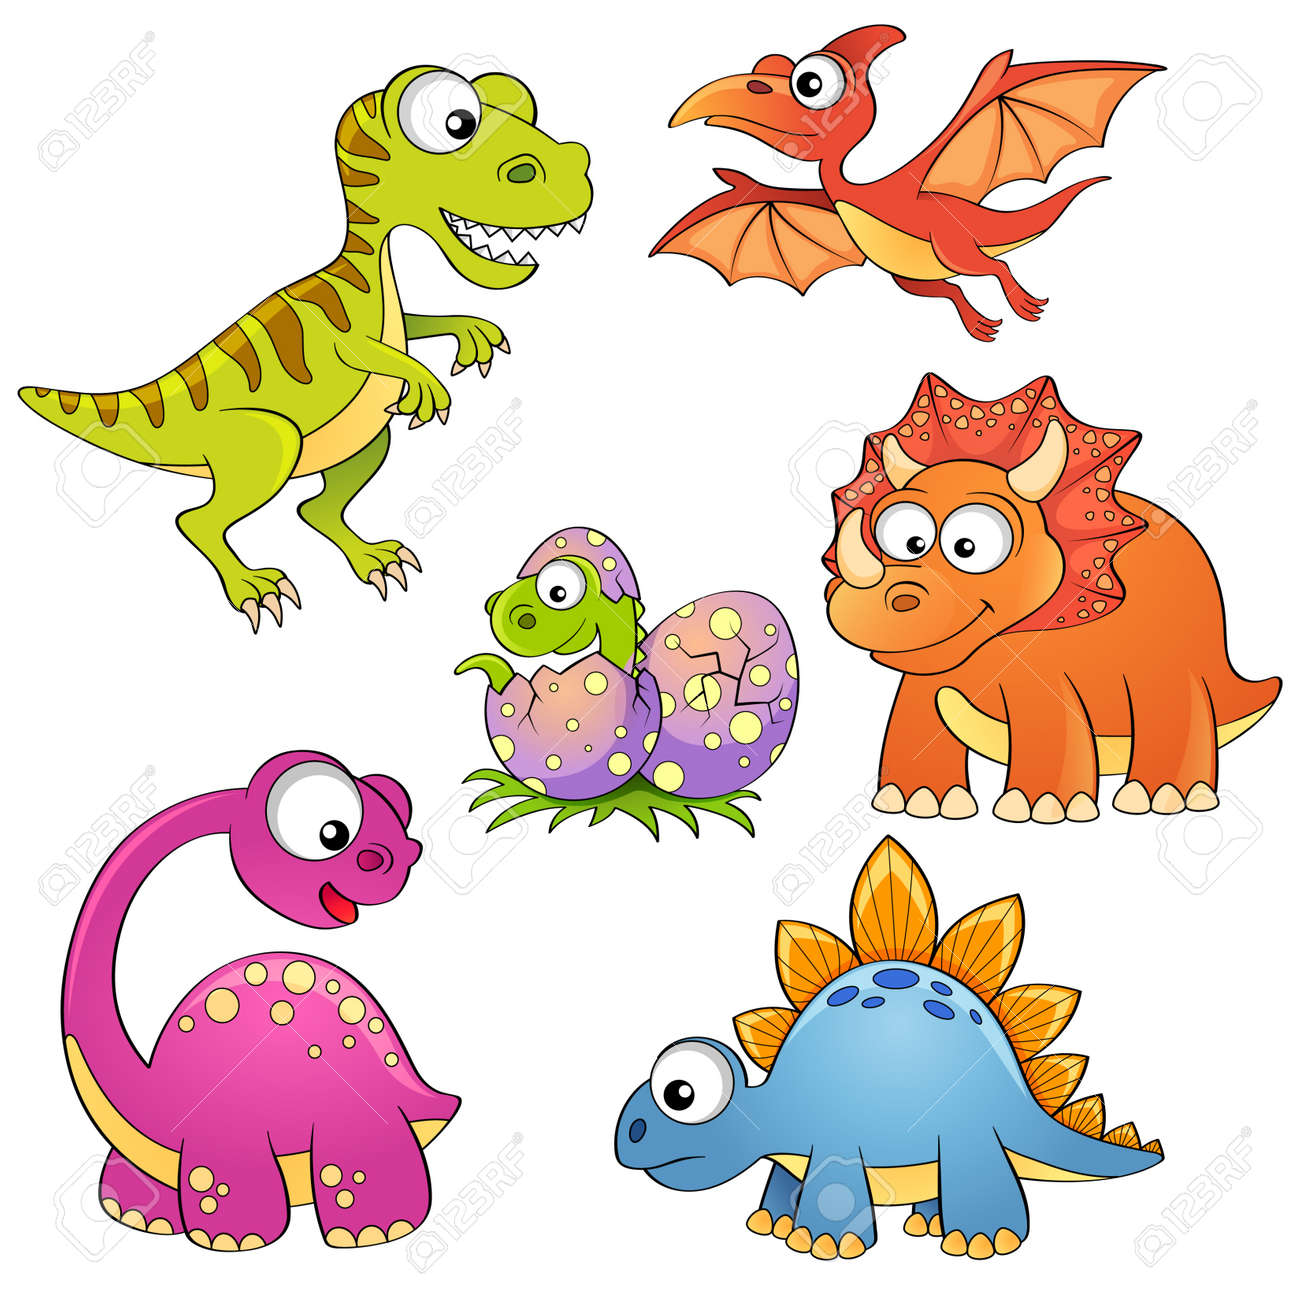 Set Of Cartoon Dinosaurs Royalty Free Cliparts Vectors And Stock Illustration Image 48129423